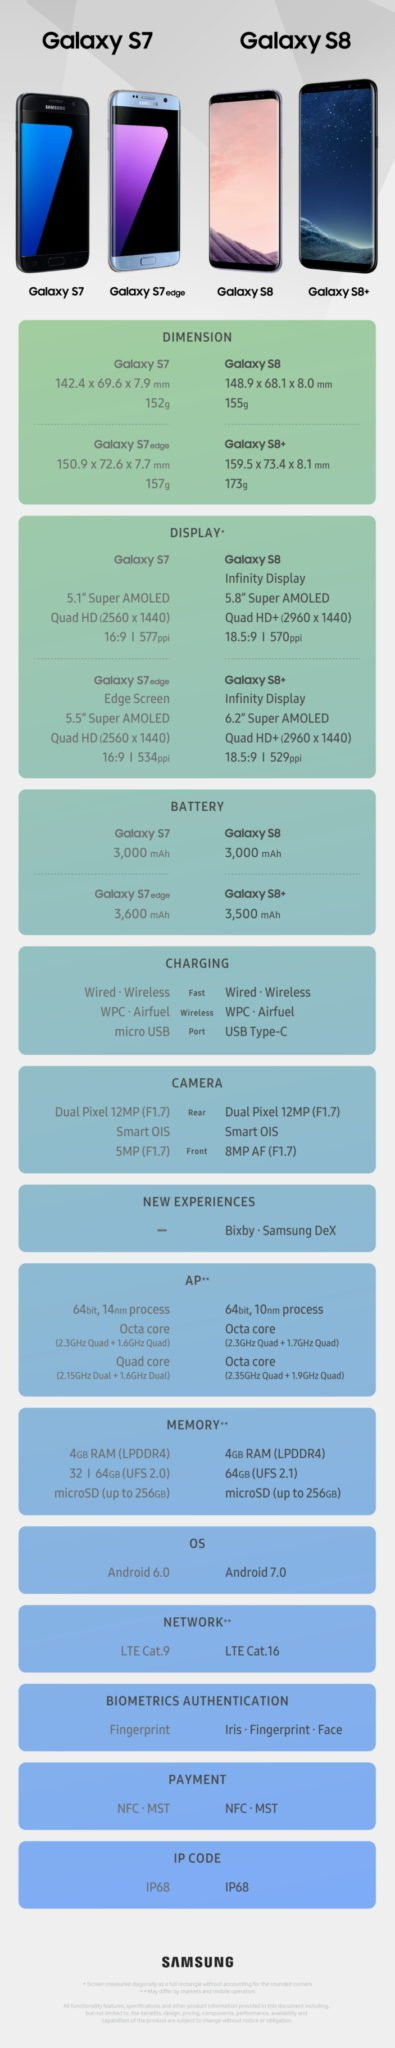 Galaxy S8 S8 Specs Comparison LiveBlog : Samsung Galaxy S8, Galaxy S8+ launch countdown; Leaks pour ahead of official launch 1 Leaks | News | Phones